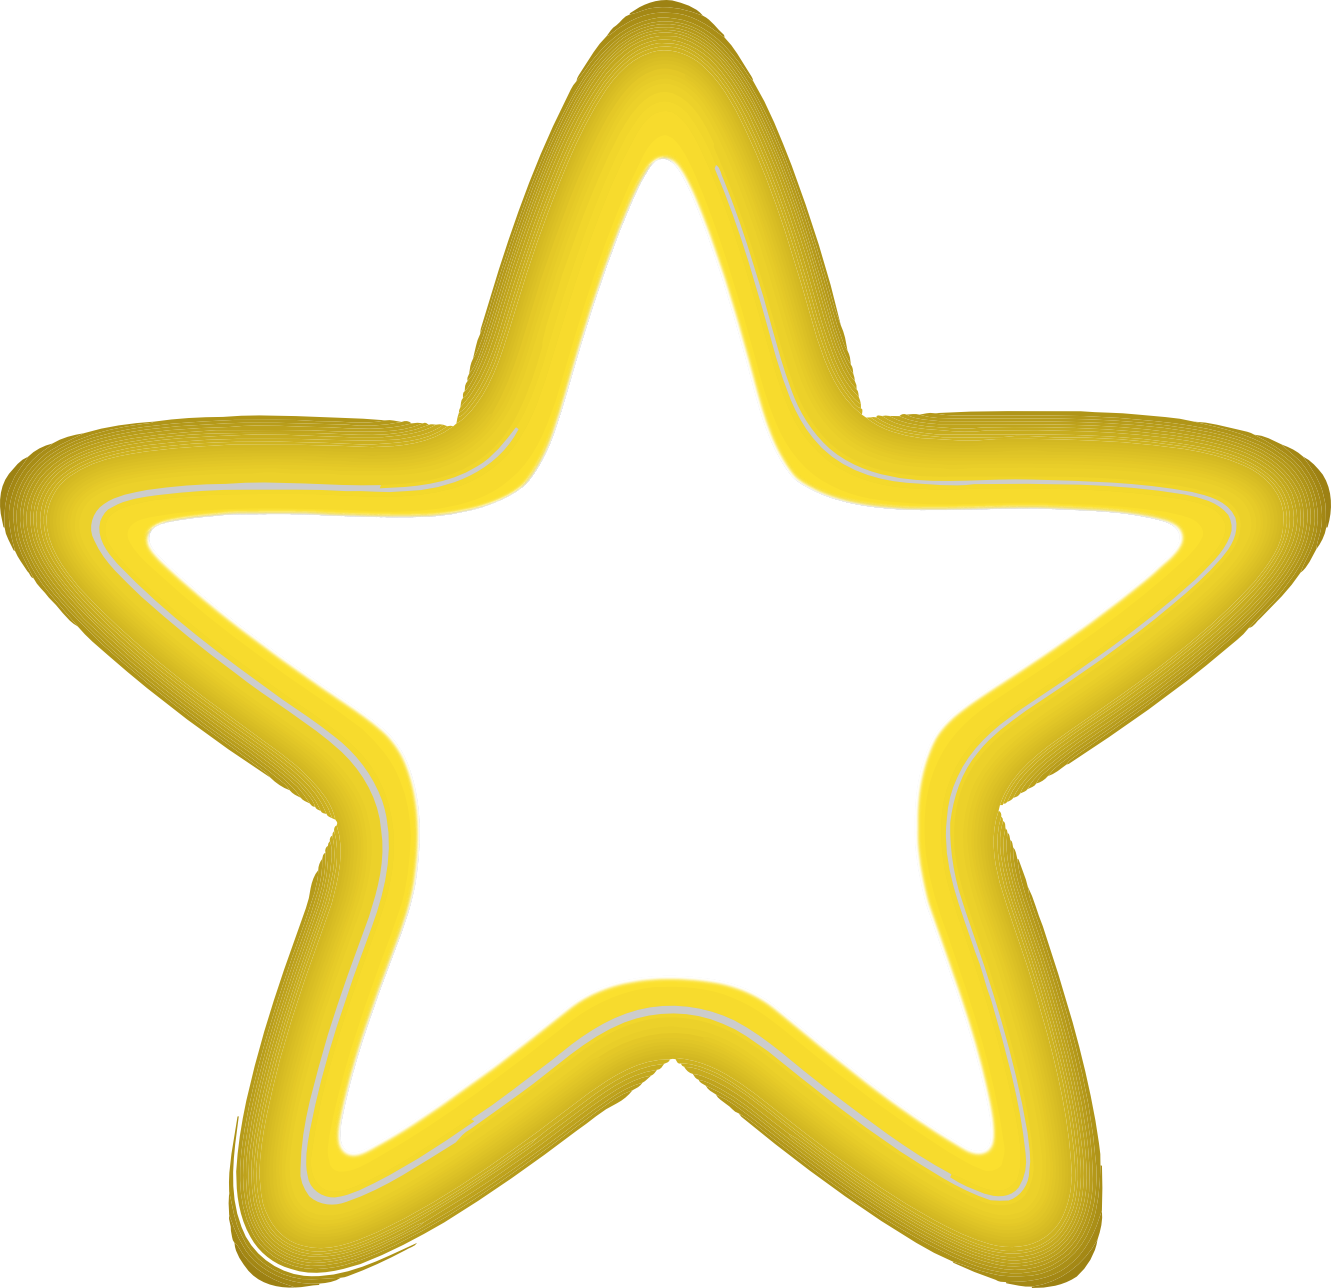 Yellow star clipart black and white colored.